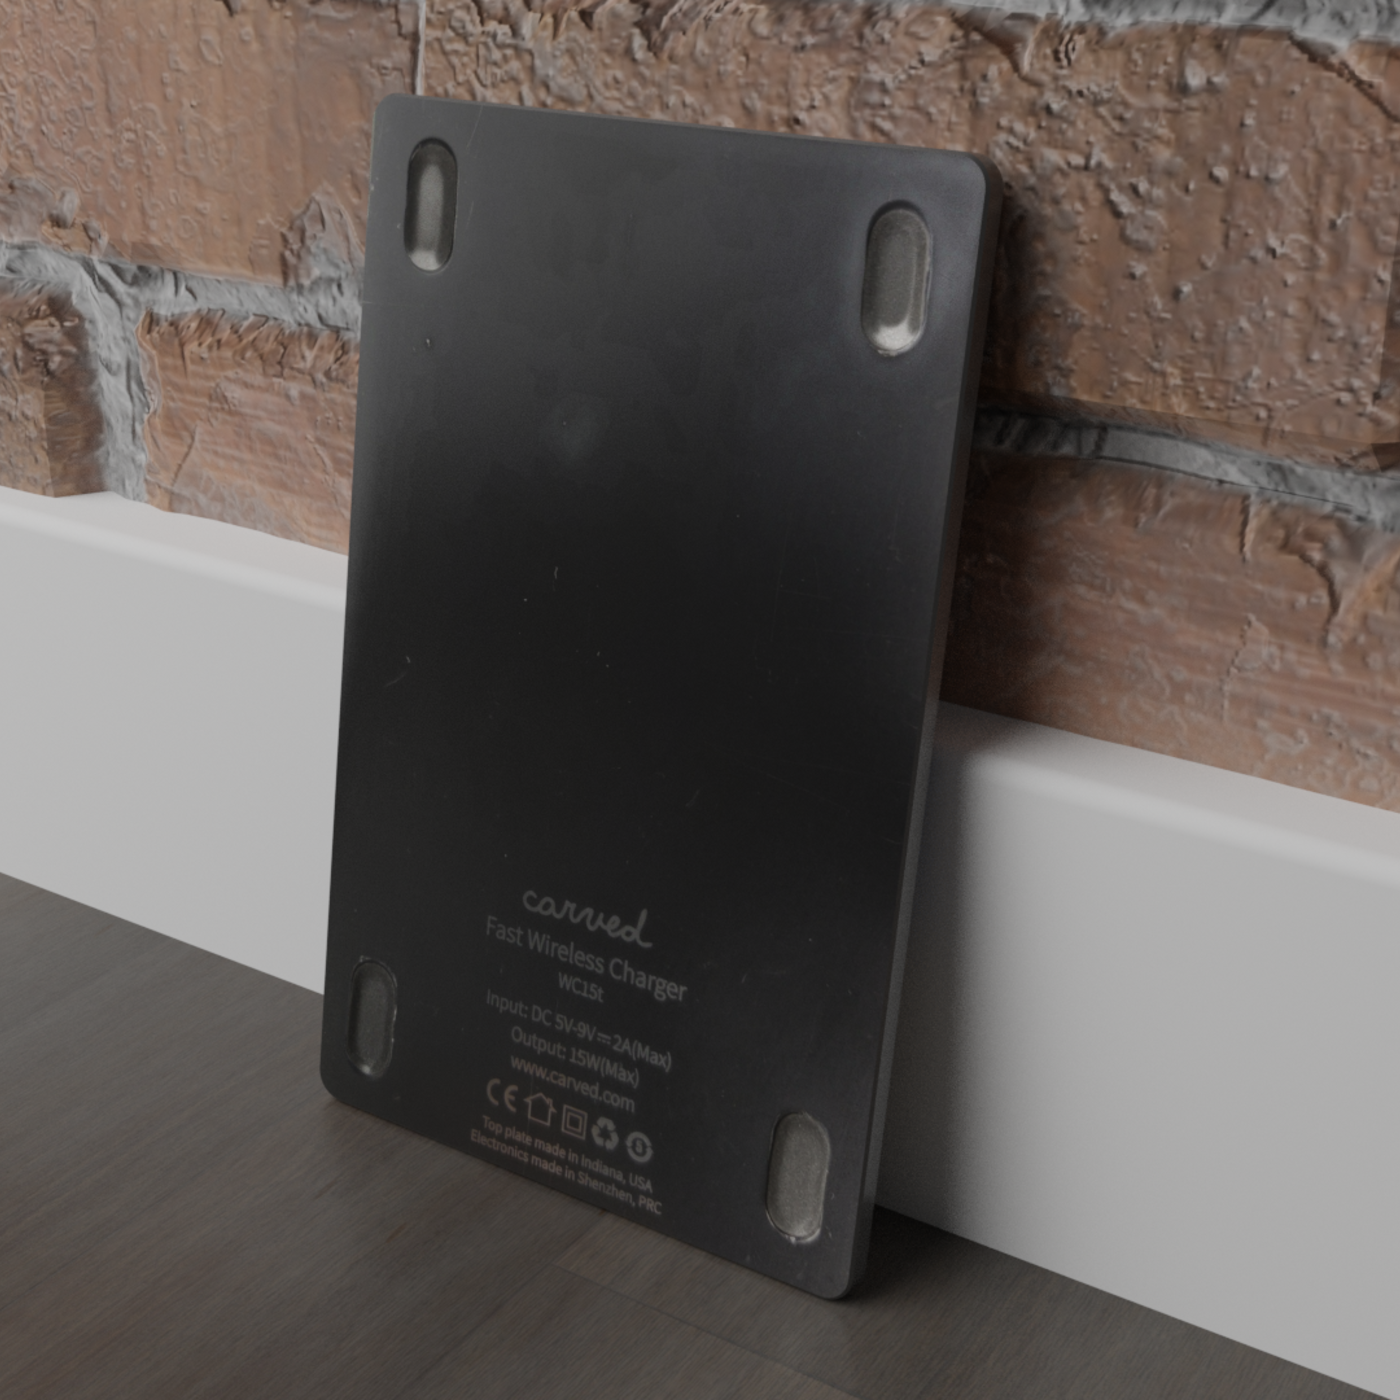 Custom-Designed Carved Wireless Charger Pad